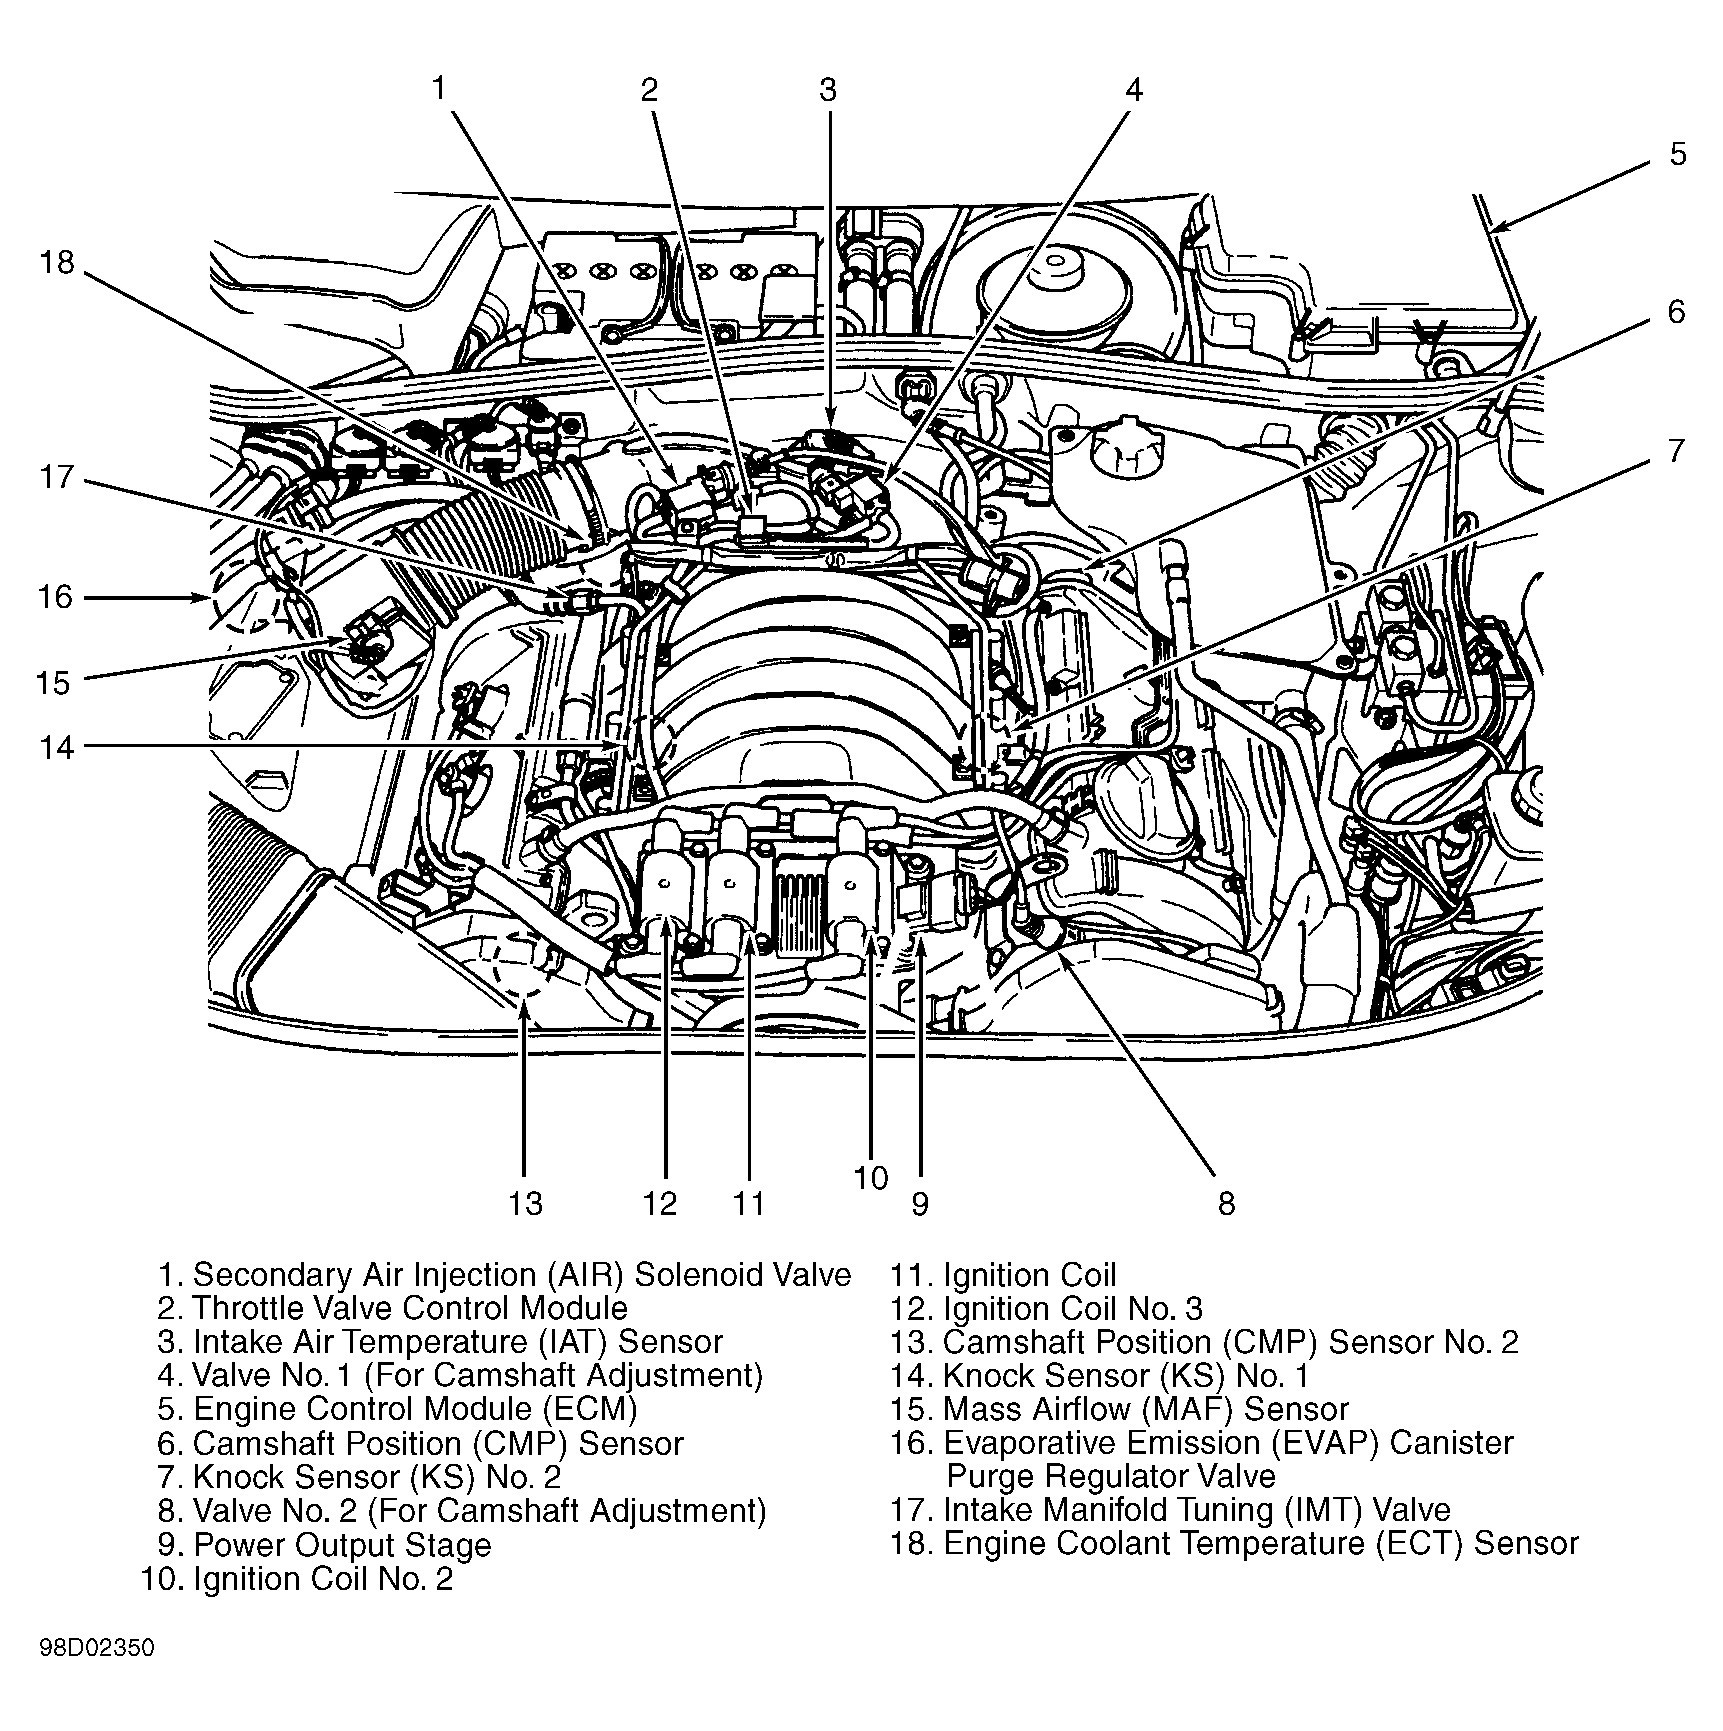 Dodge 4 7 Engine Diagram 2 2002 Dodge Caravan Radiator Hose Diagram Dodge  Wiring Diagrams Of